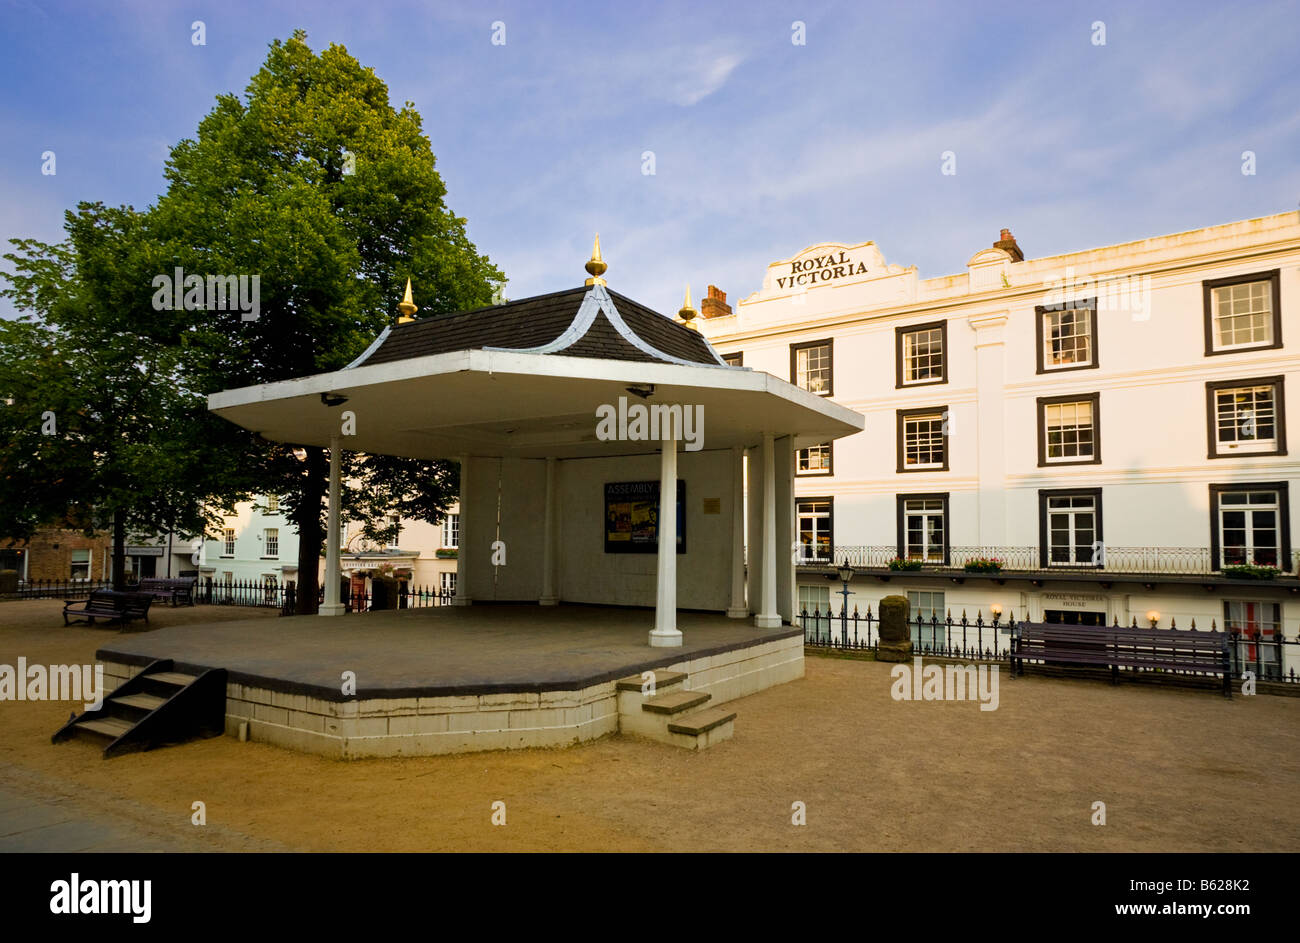 Bandstand on The Pantiles Upper Walks Royal Tunbridge Wells Kent England UK - Stock Image